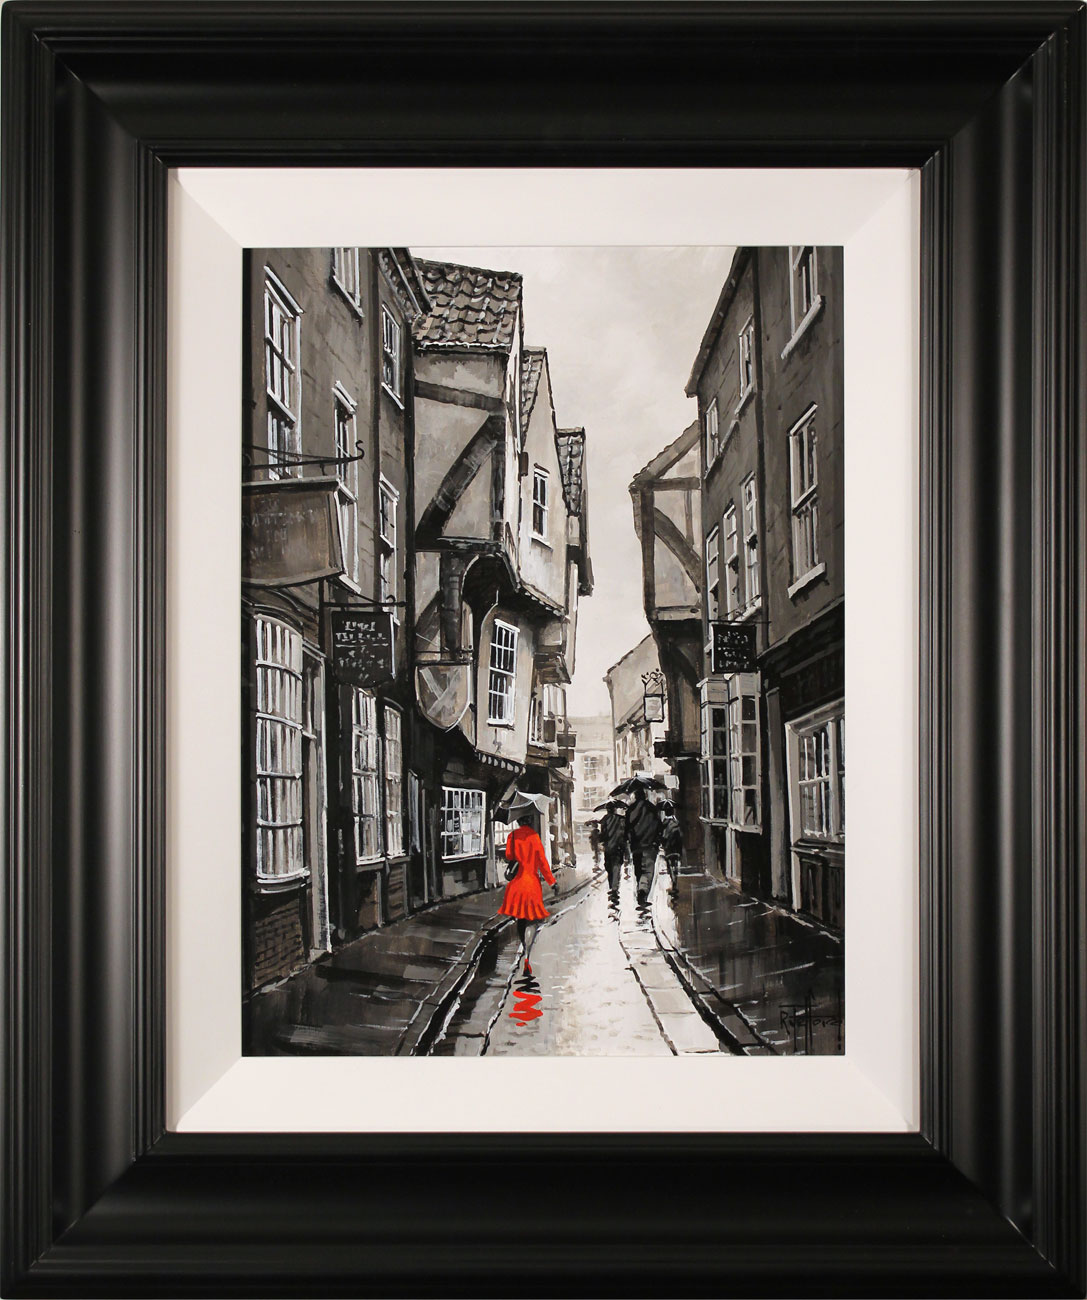 Richard Telford, Original oil painting on panel, The Shambles, York Click to enlarge